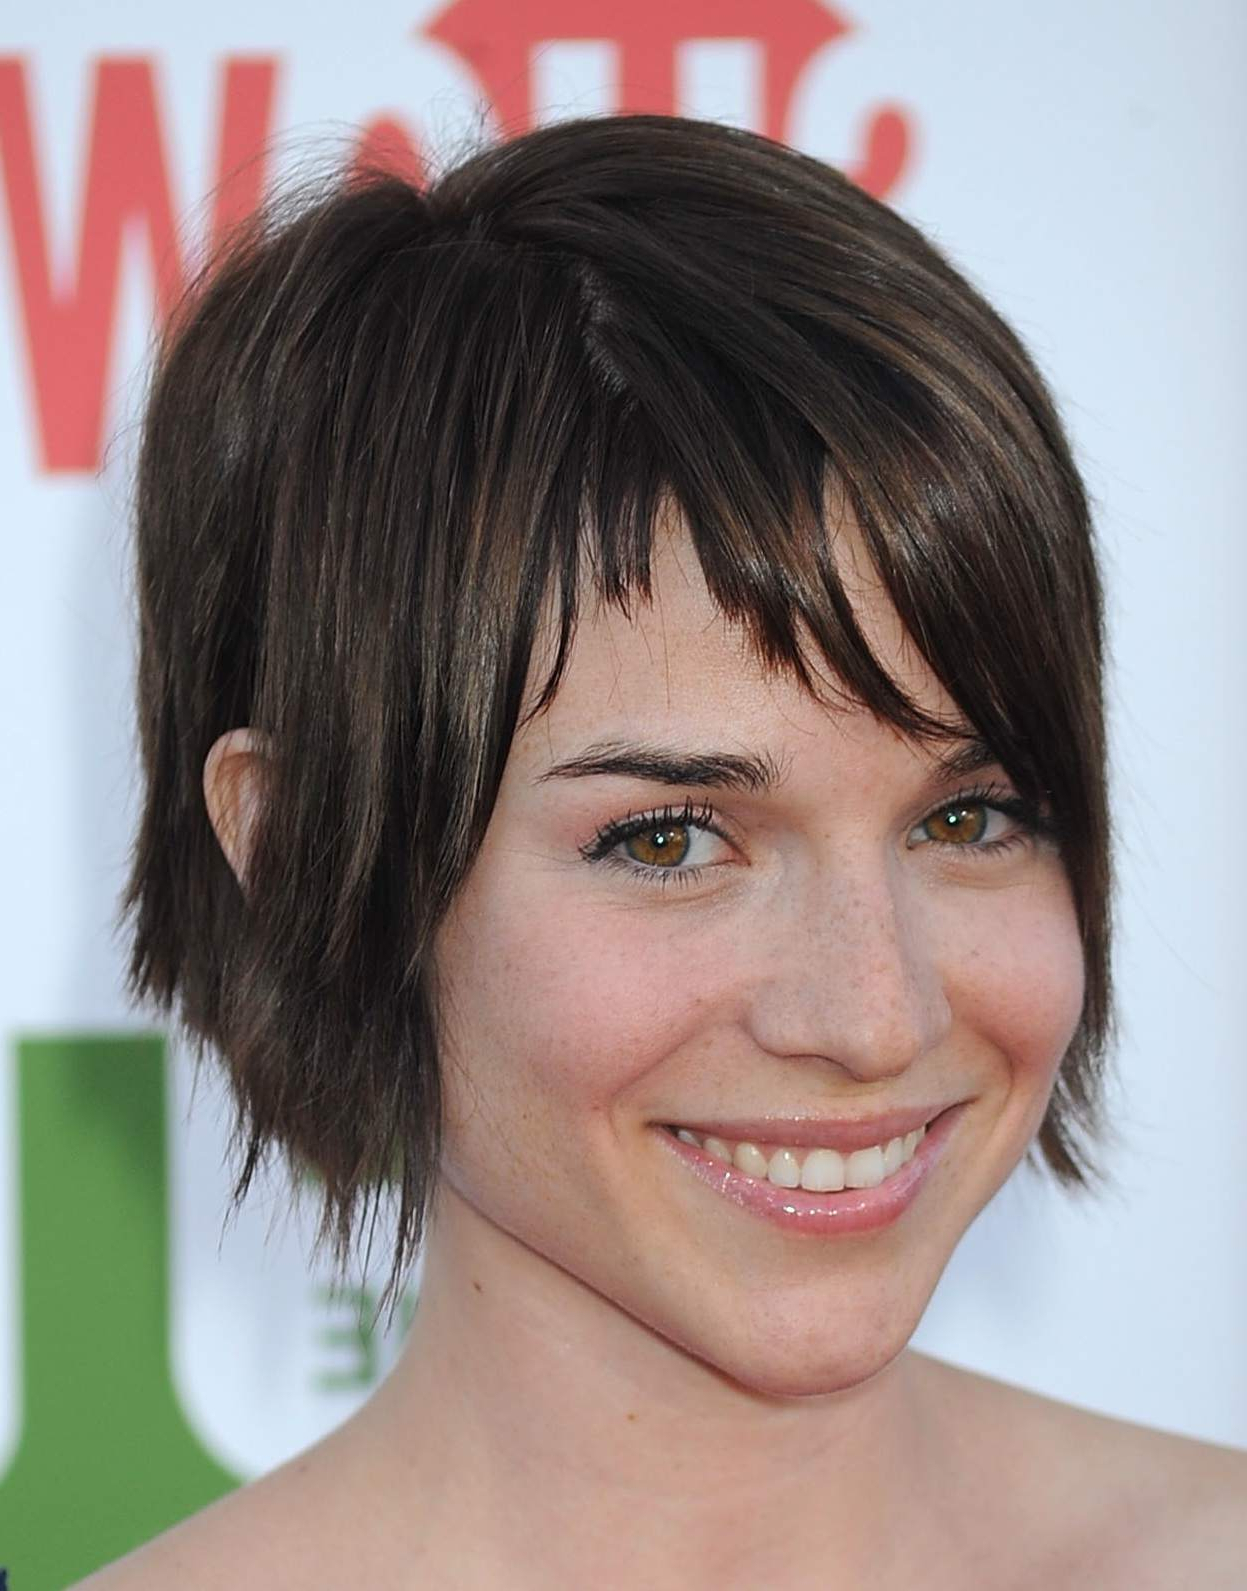 From Pixies To Shags: 18 Great Cuts For Short, Brown Hair intended for Dramatic Short Hairstyles